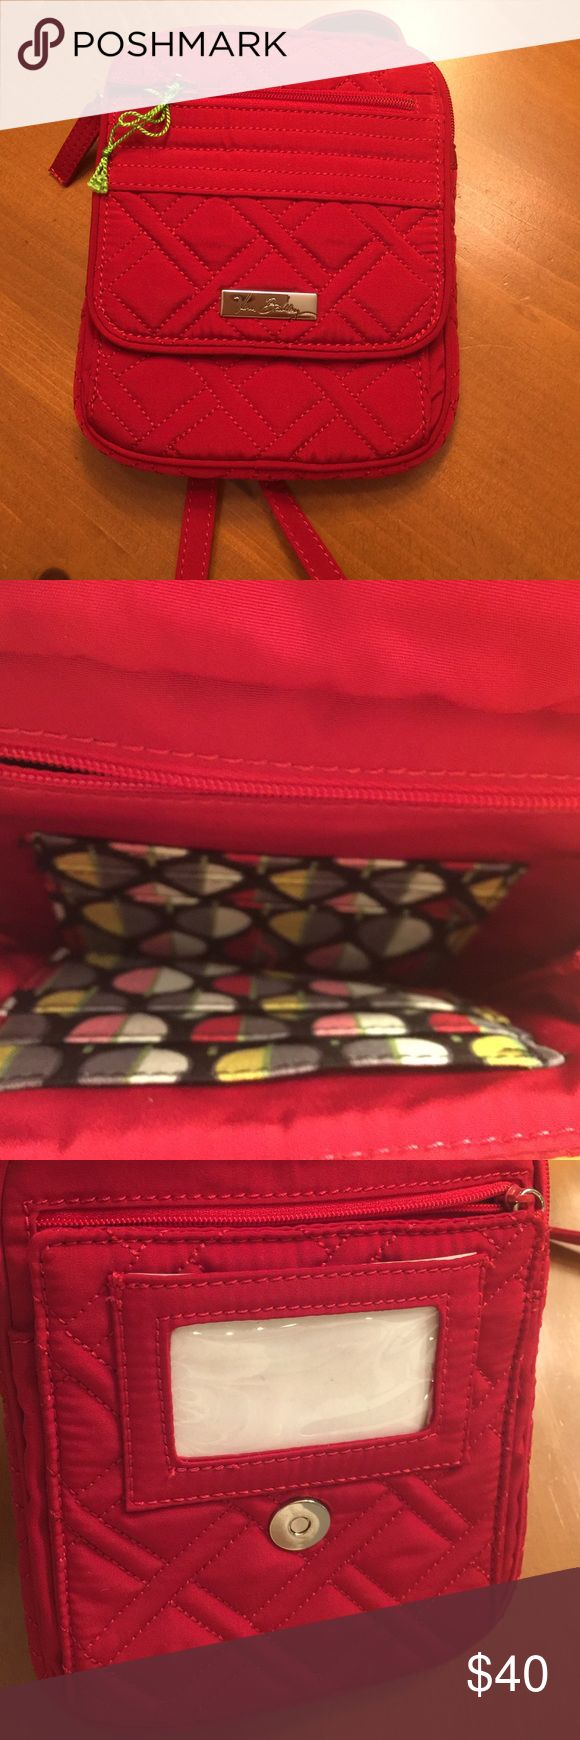 Vera Bradley Crossbody NWT Cute little Crossbody. Has multiple pockets for storage and can be used as a wallet and a bag!Bought in a Vera Bradley store. Vera Bradley Bags Crossbody Bags